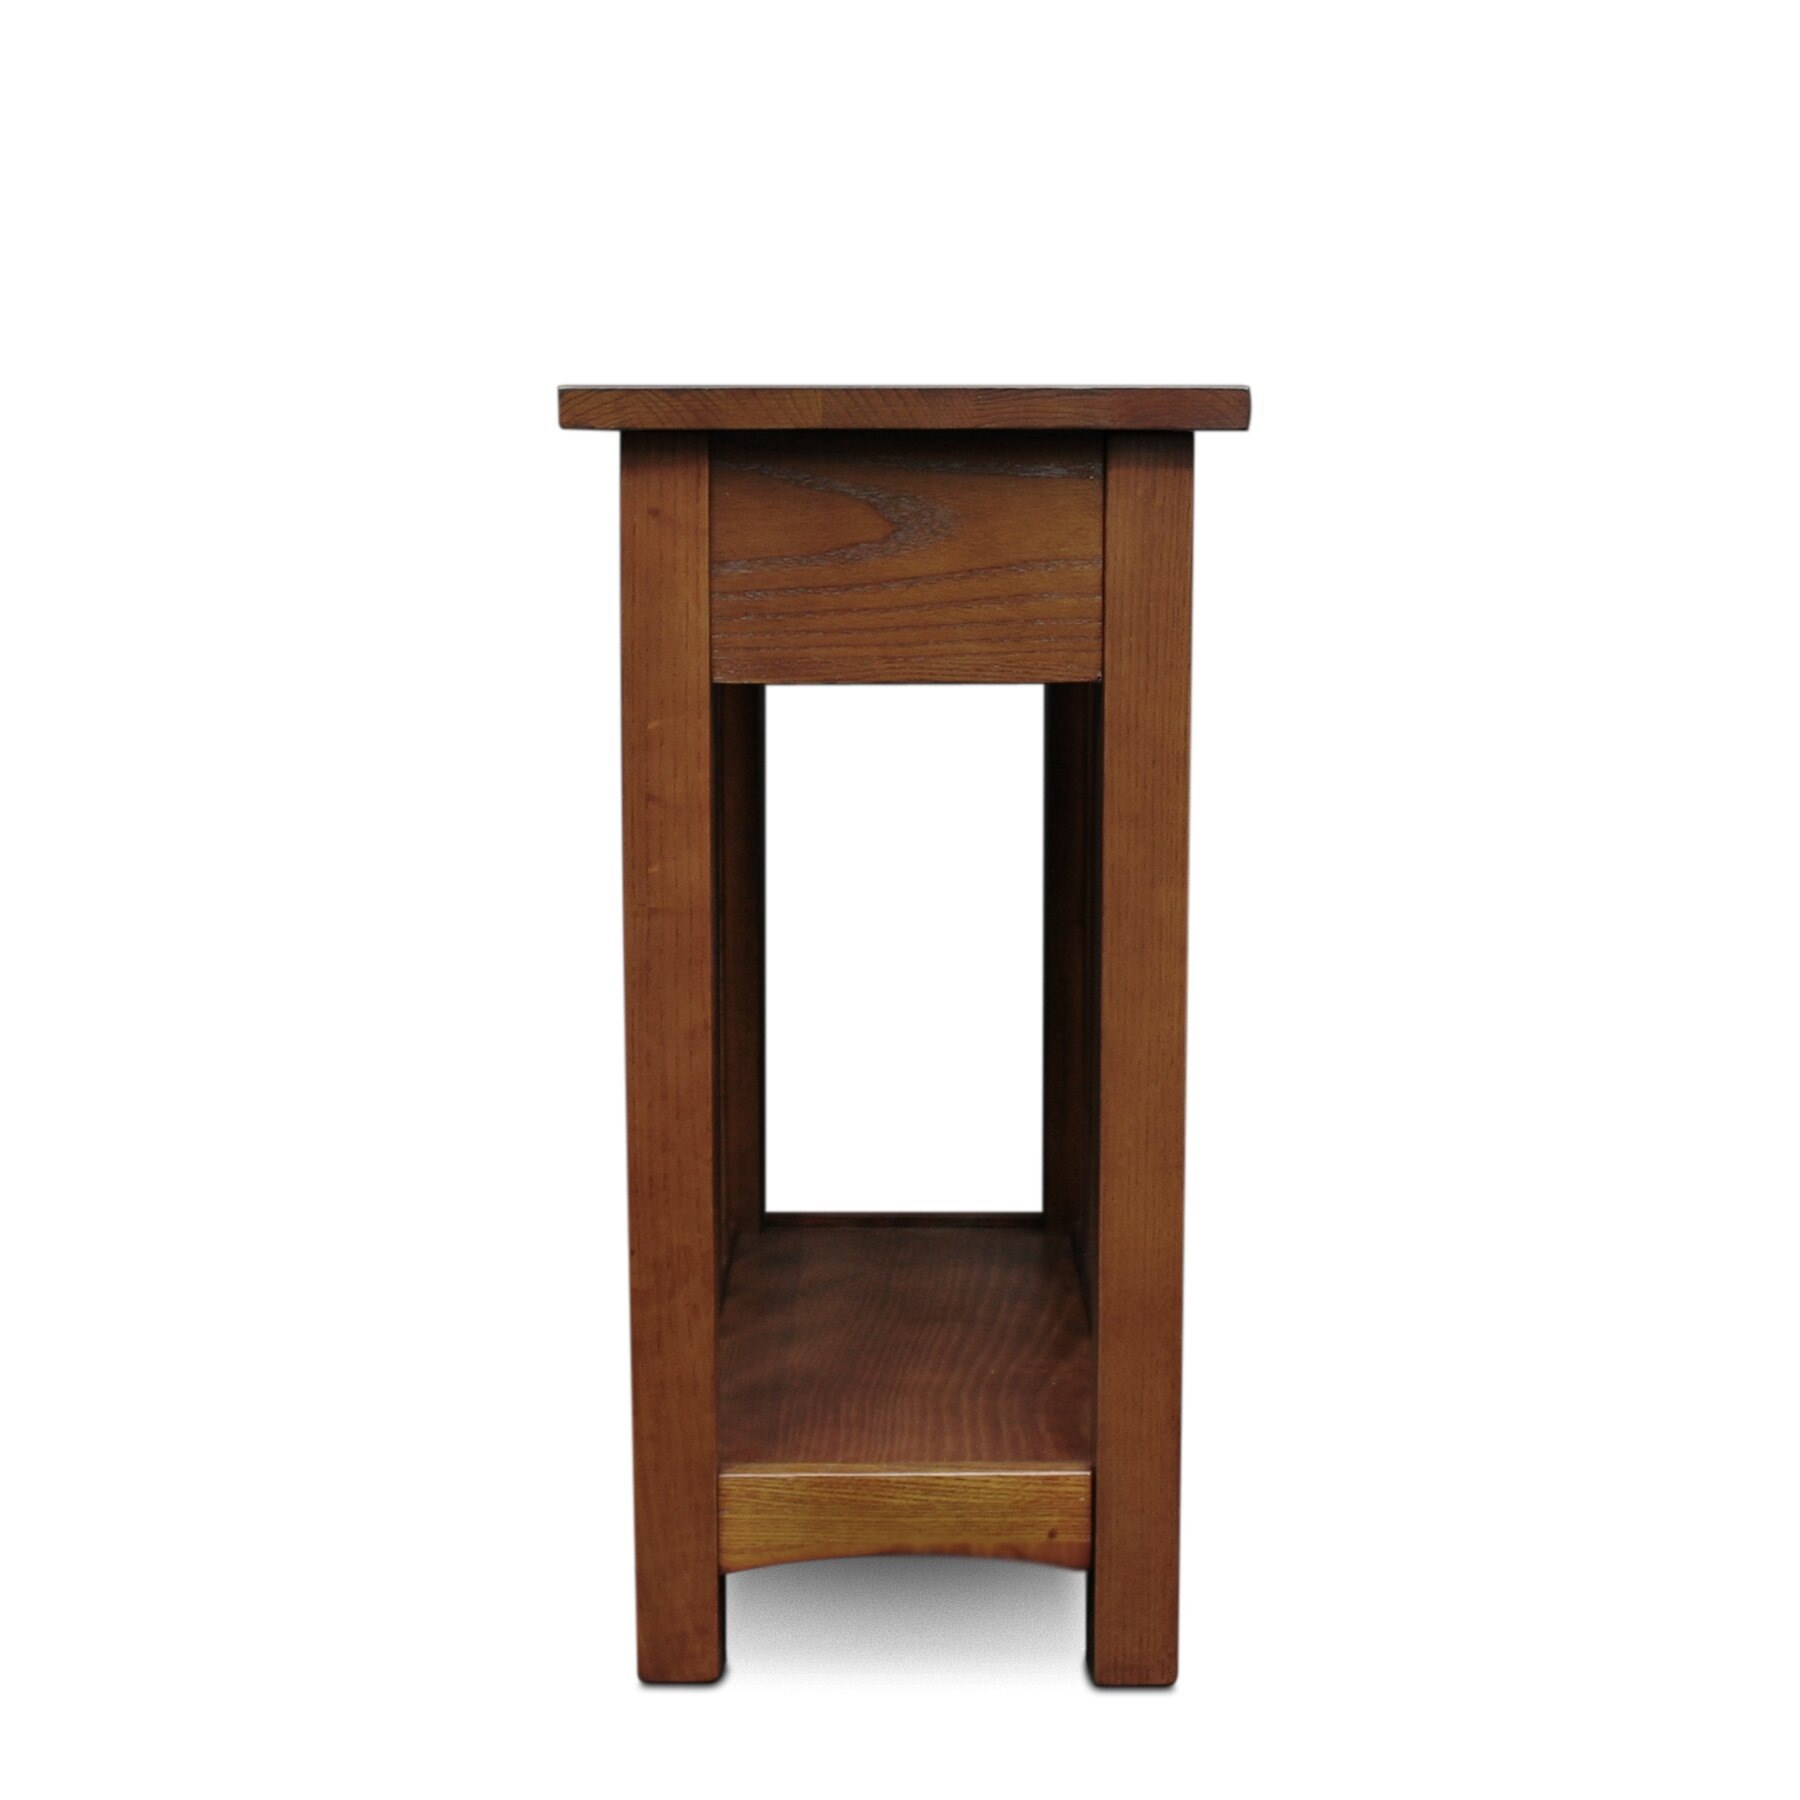 Mission Oak Bedroom Furniture Leick Furniture Mission Chairside Table With Storage Drawer And